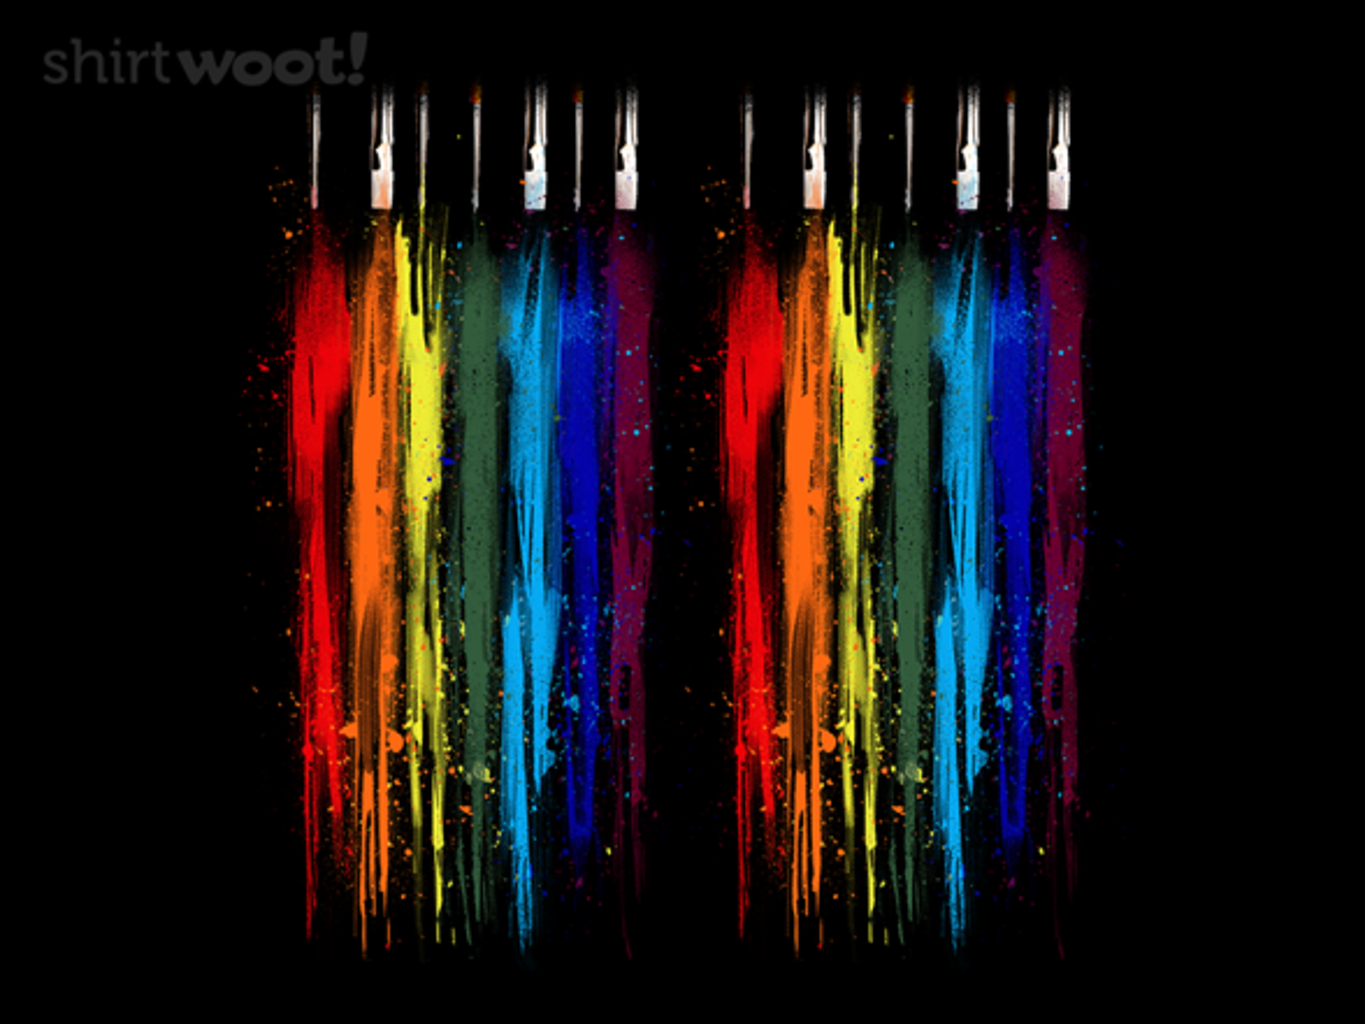 Woot!: Paint Abstract